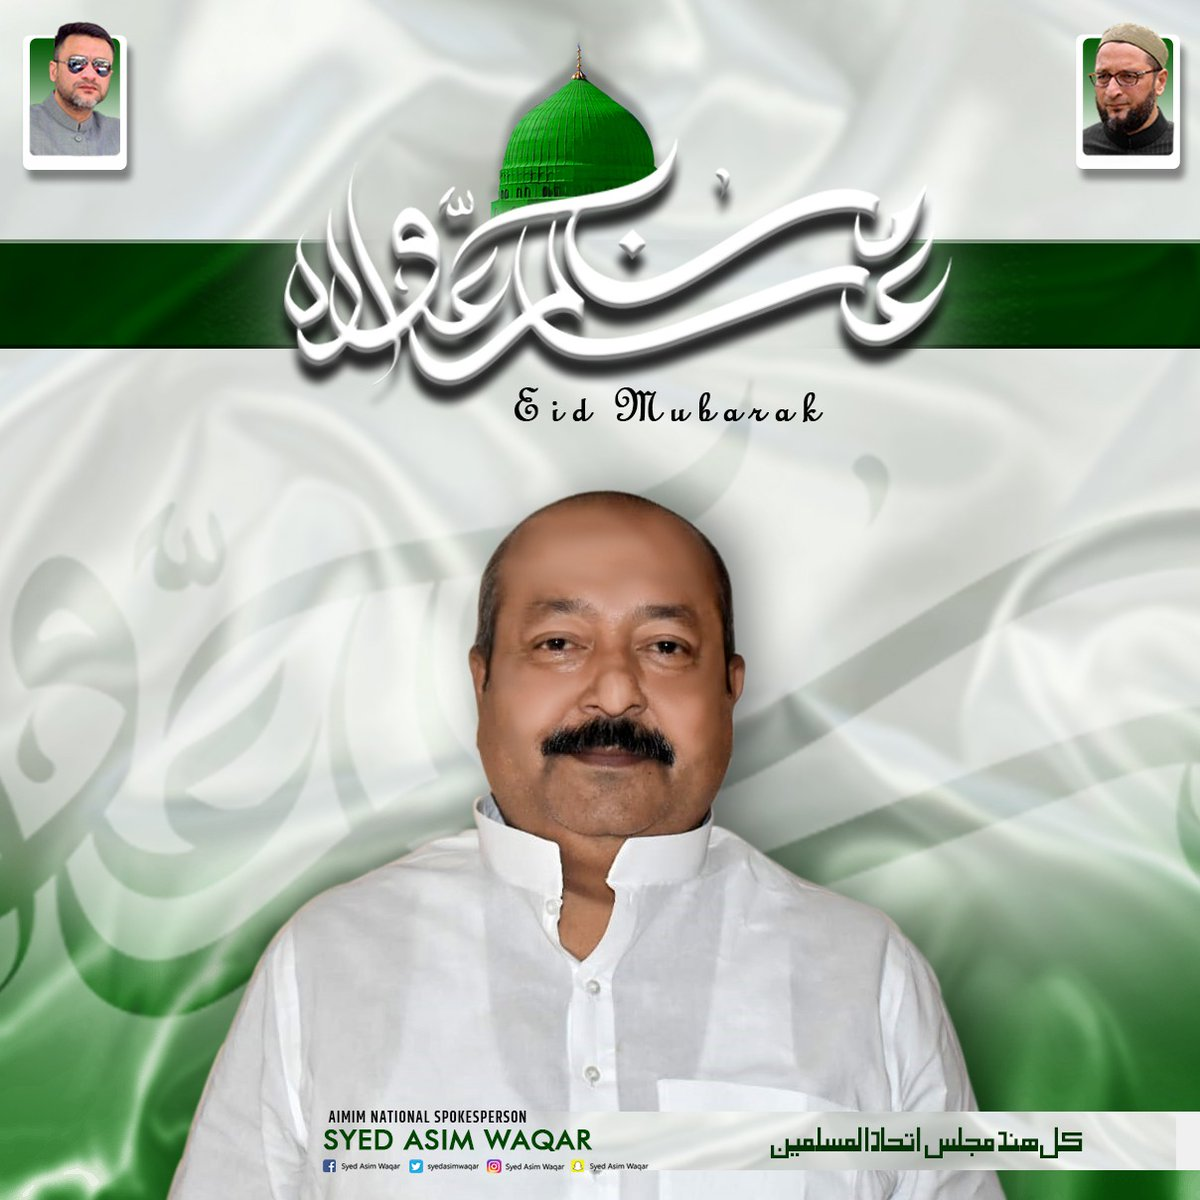 We wish #EidUlFitr Mubarak to you all, May Allah swt shower many more Eids on us and allow the Ummah to grow in strength and prosperity!! Ameen. Regards: AIMIM National Spokesperson @syedasimwaqar